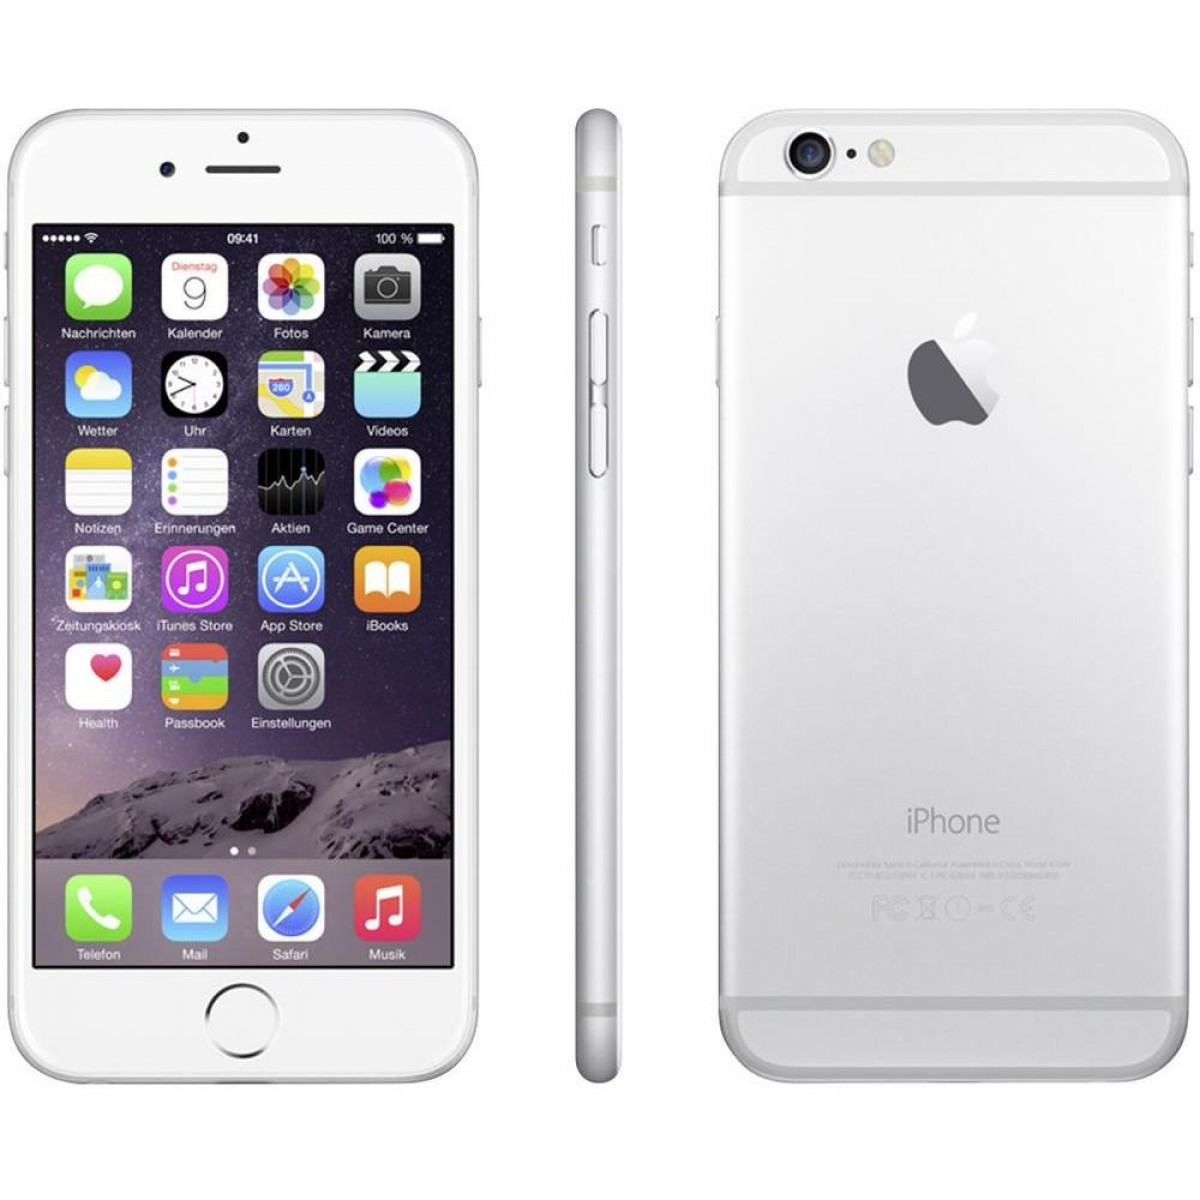 iphone 6 tmobile apple iphone 6 32gb smartphone t mobile silver 11433